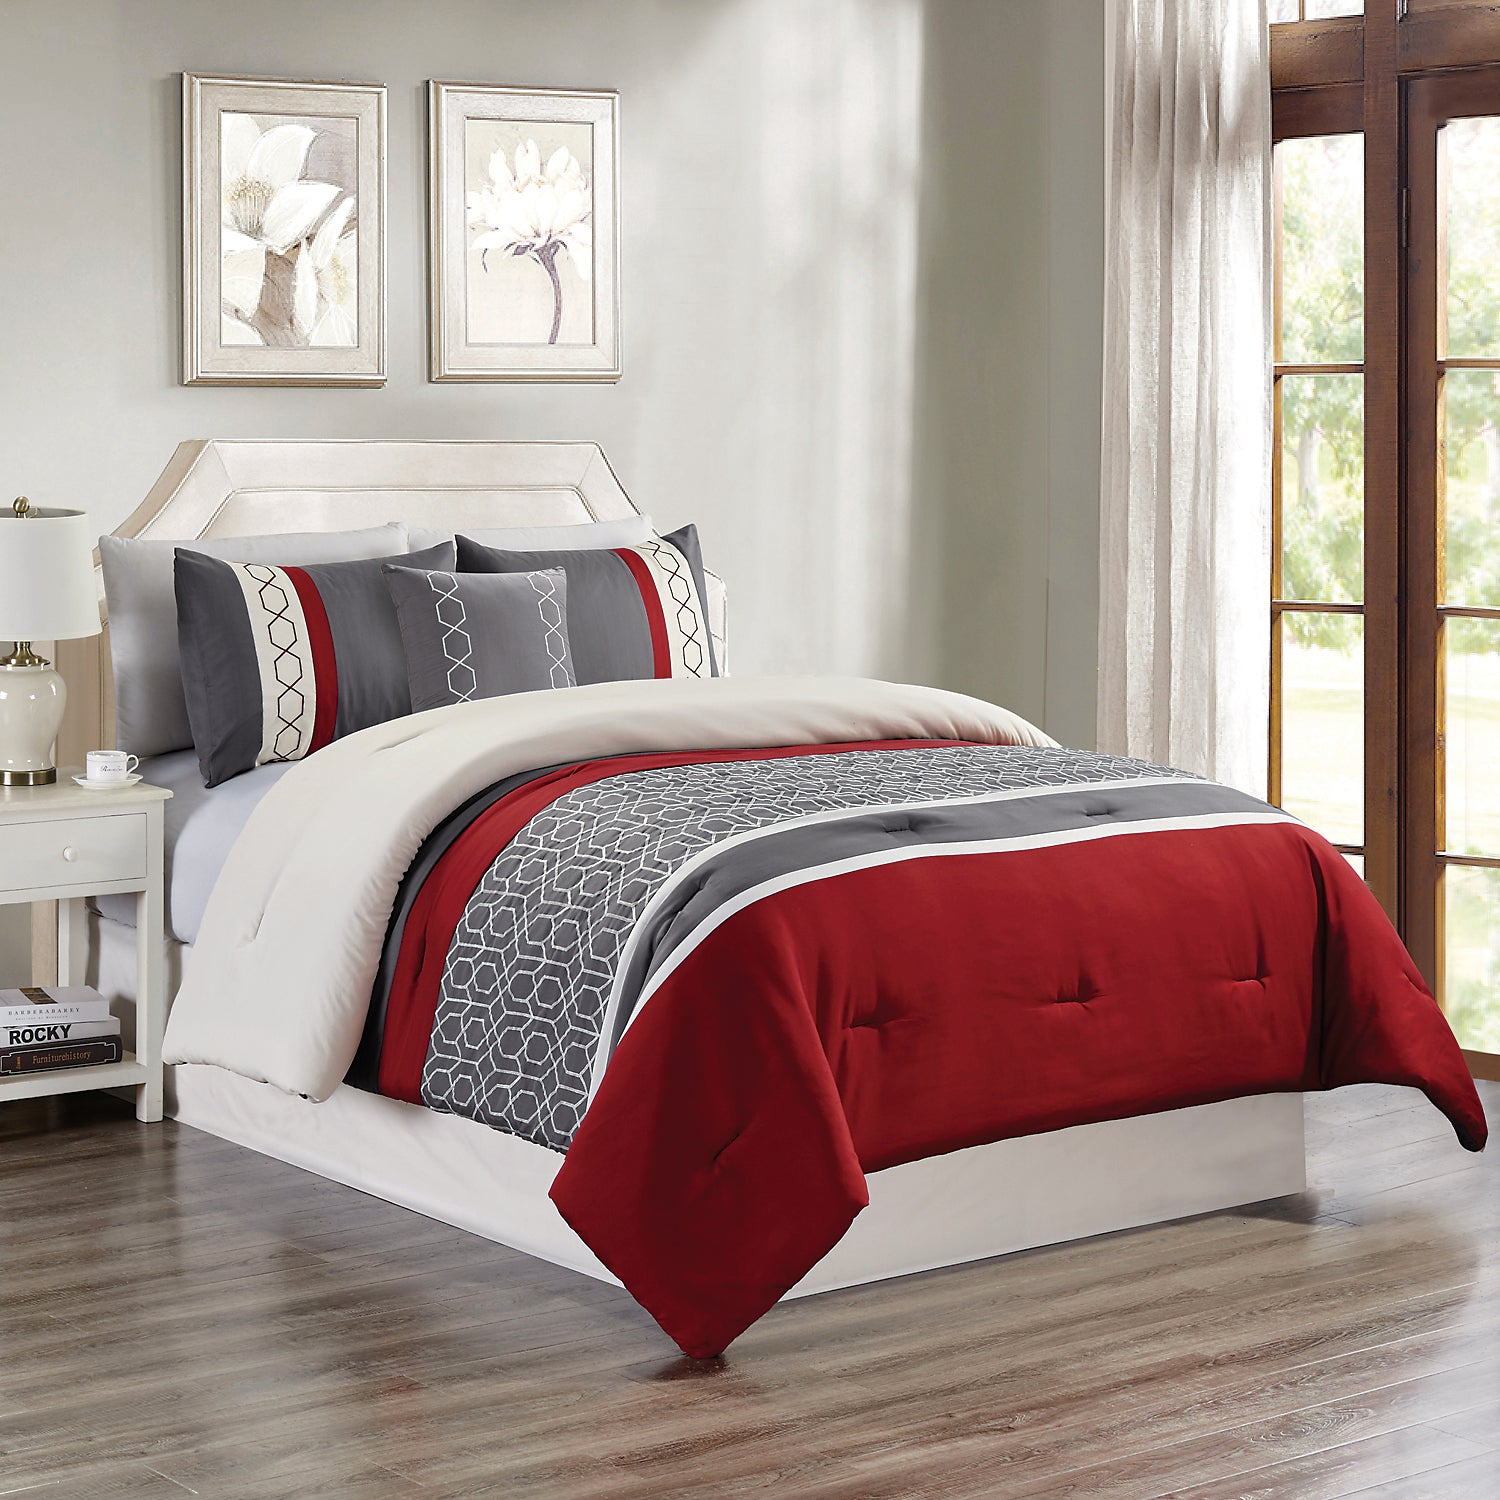 Carlin Red And Grey 4 Piece King Comforter Set The Brick